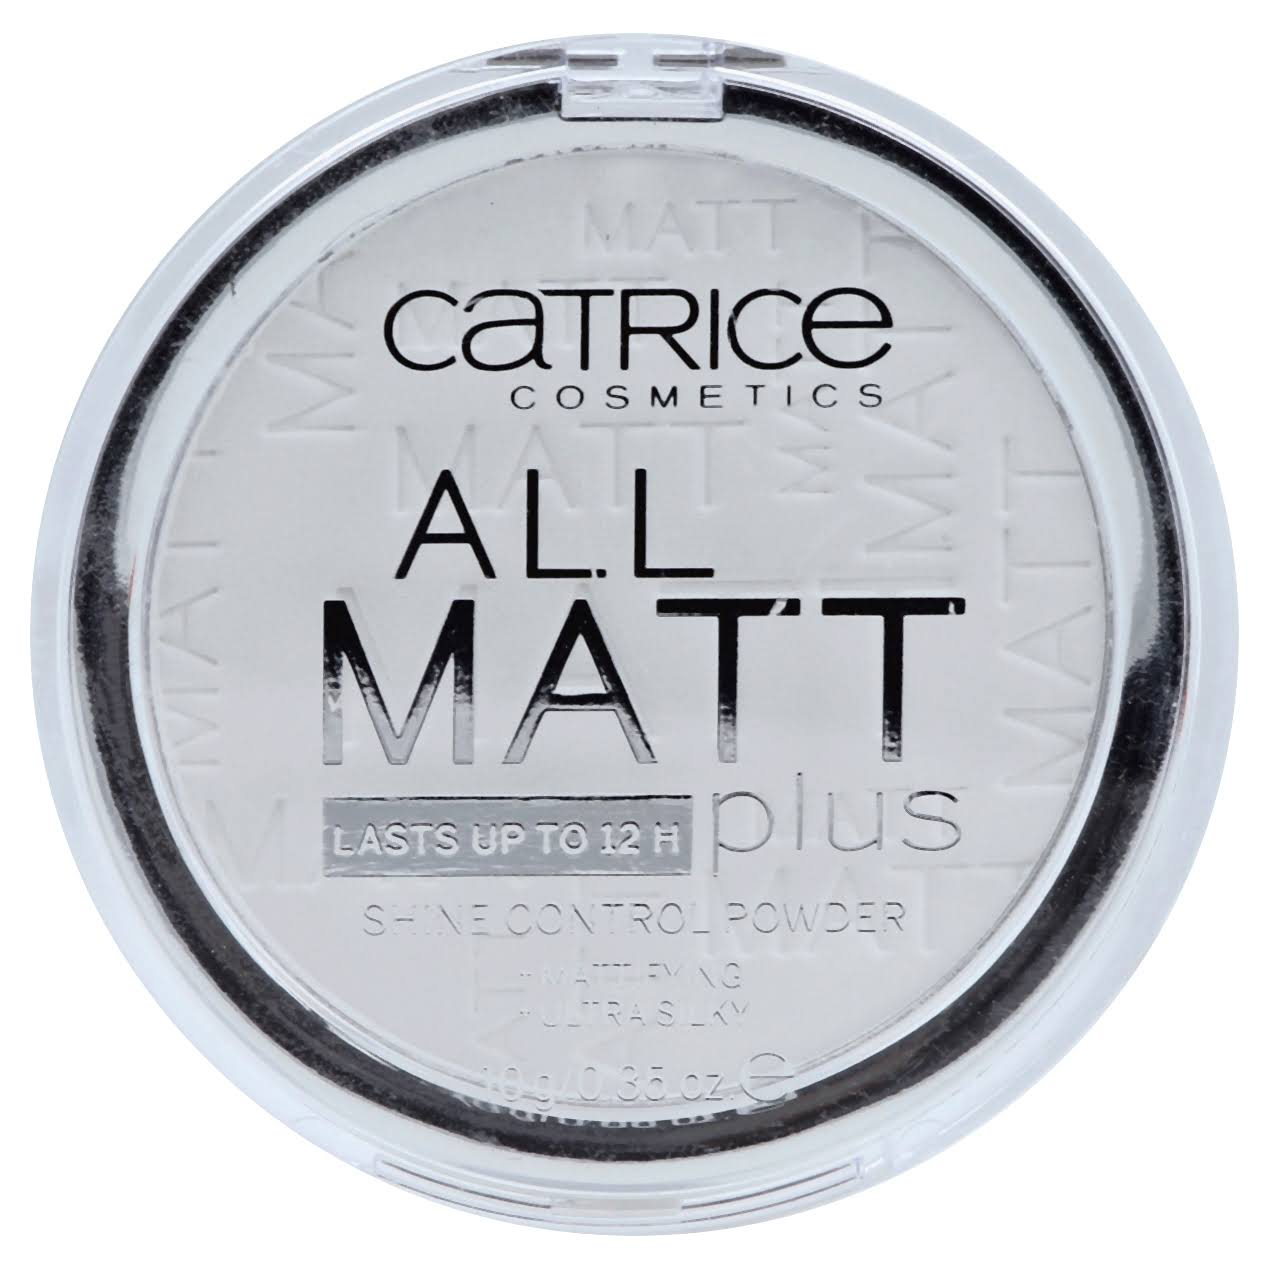 Catrice All Matt Plus Mattifying Powder Shade 001 Universal 10 G